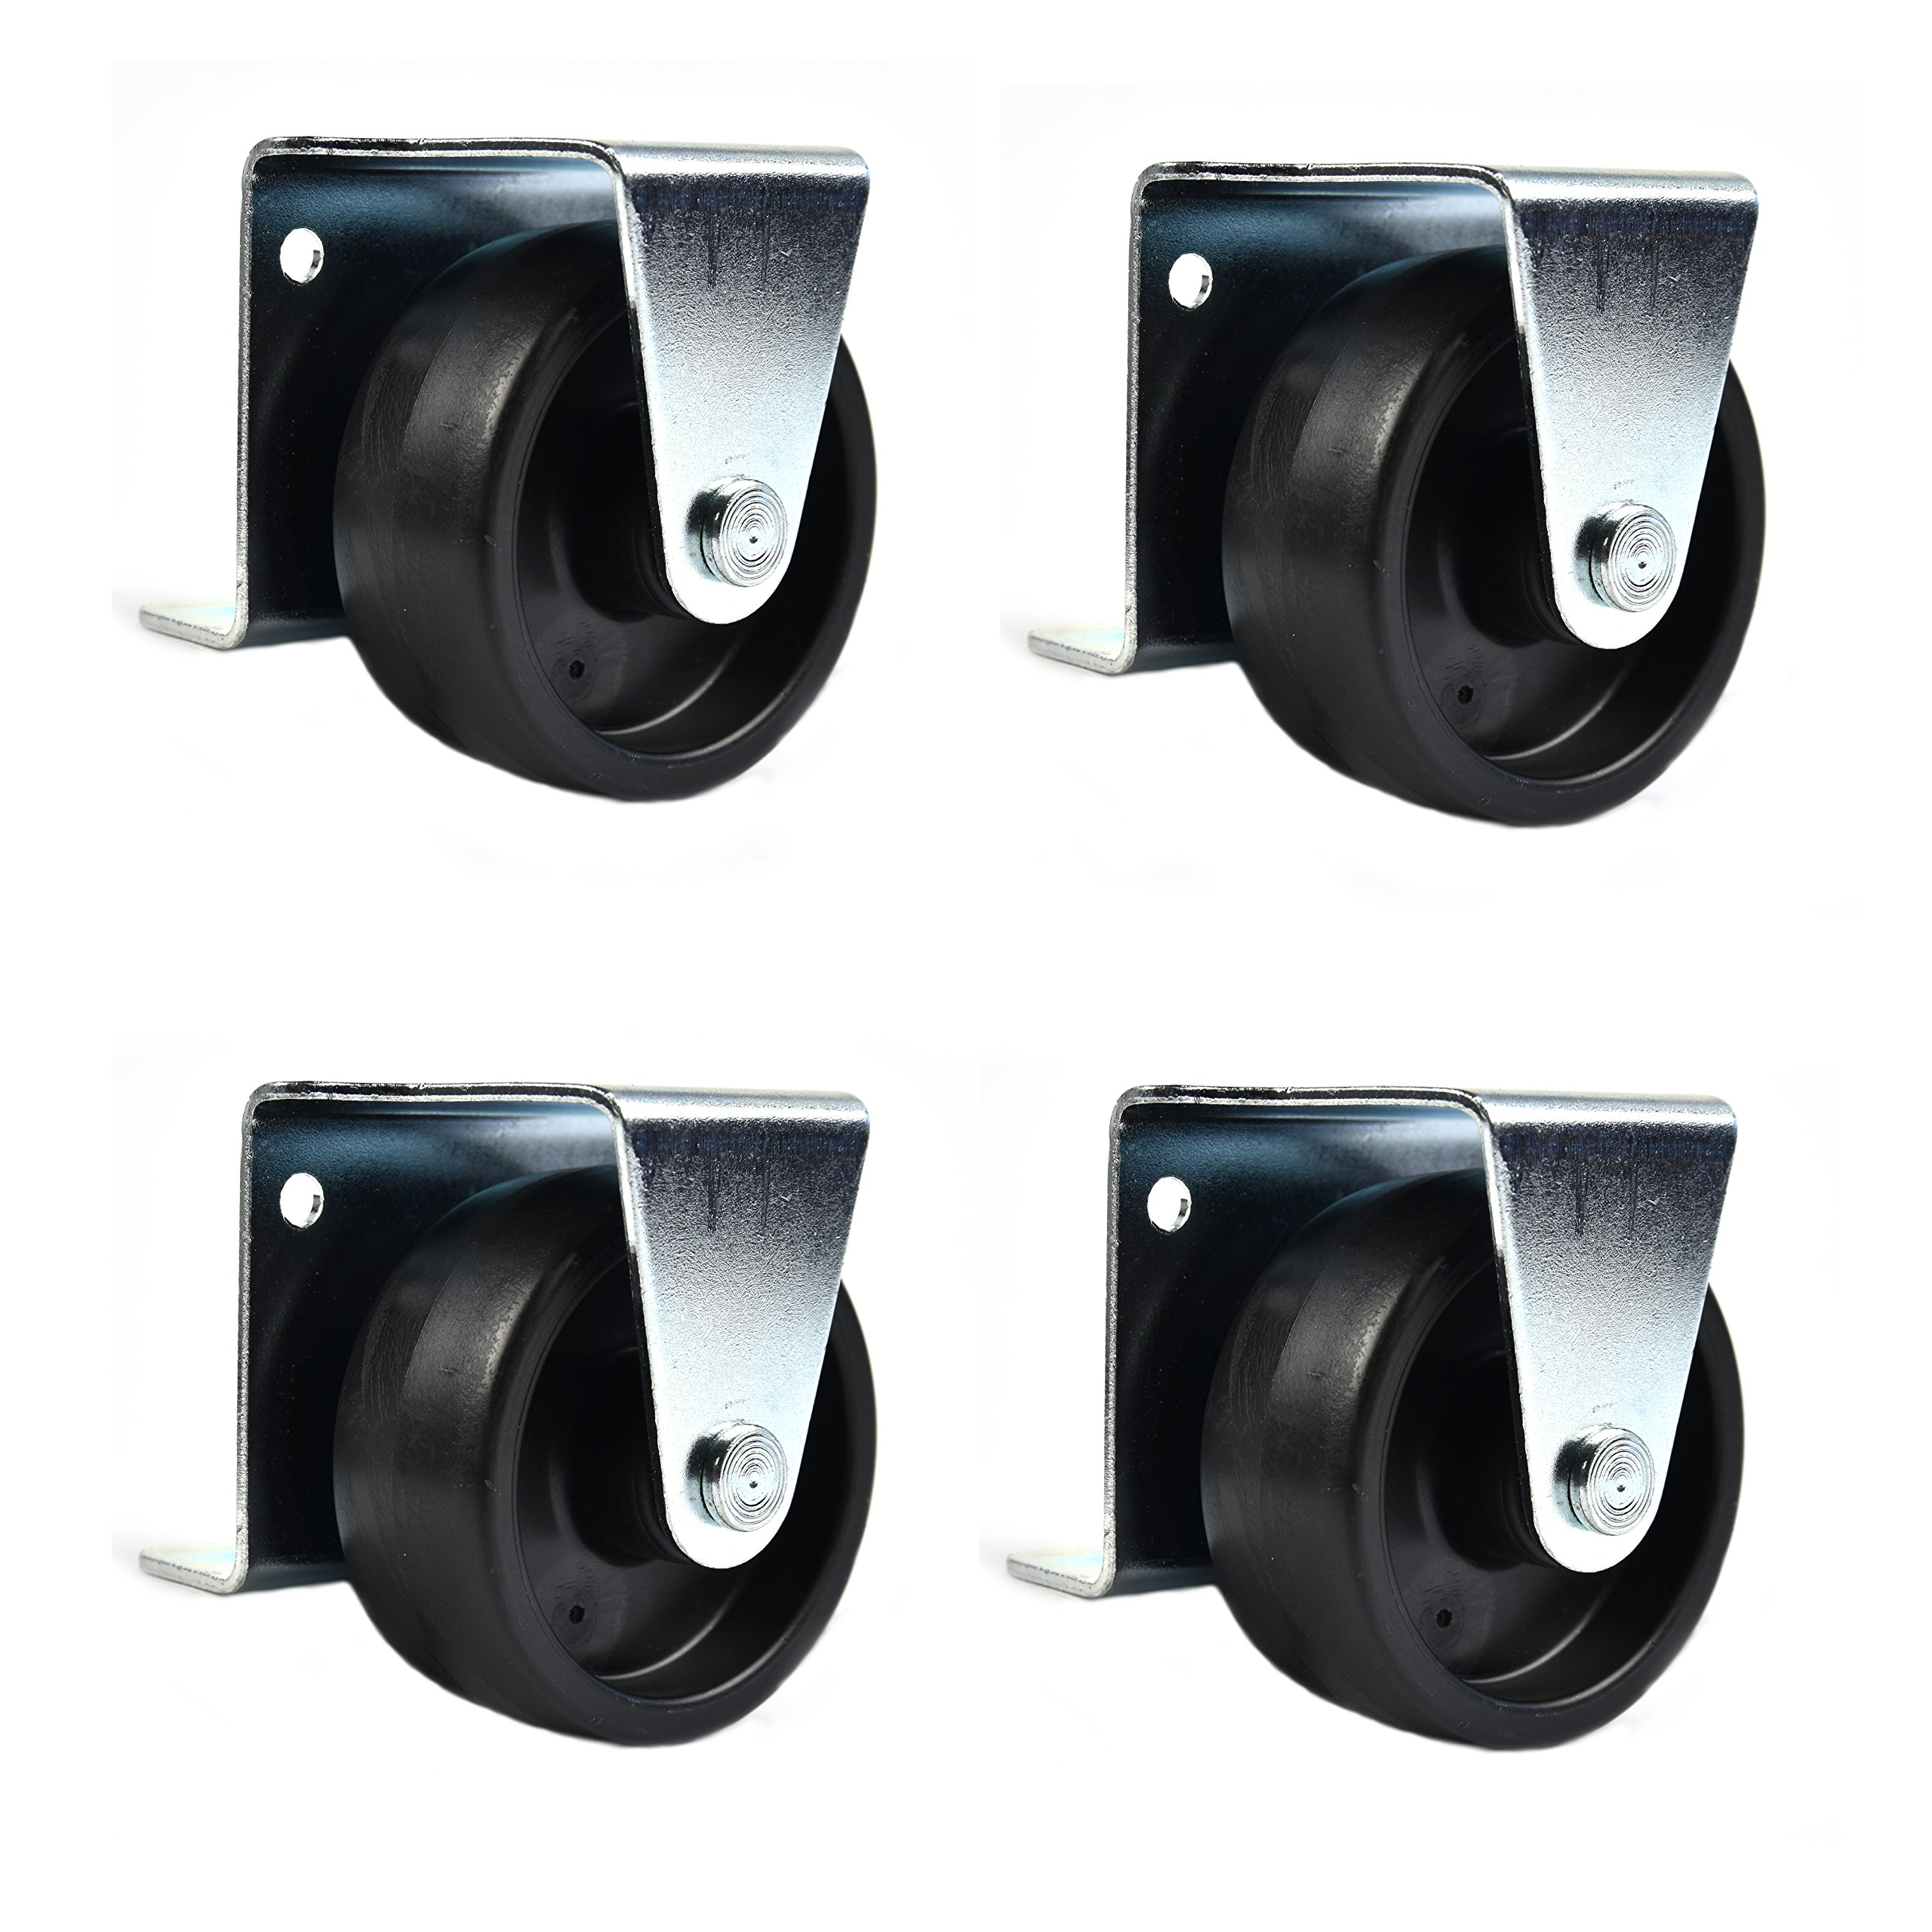 Low Profile Casters/ Wheels for Trundle Roll Out Beds or Cabinets - 2 Inch Wheels - Set of 4 (SCREWS INCLUDED) - by Combo Solutions